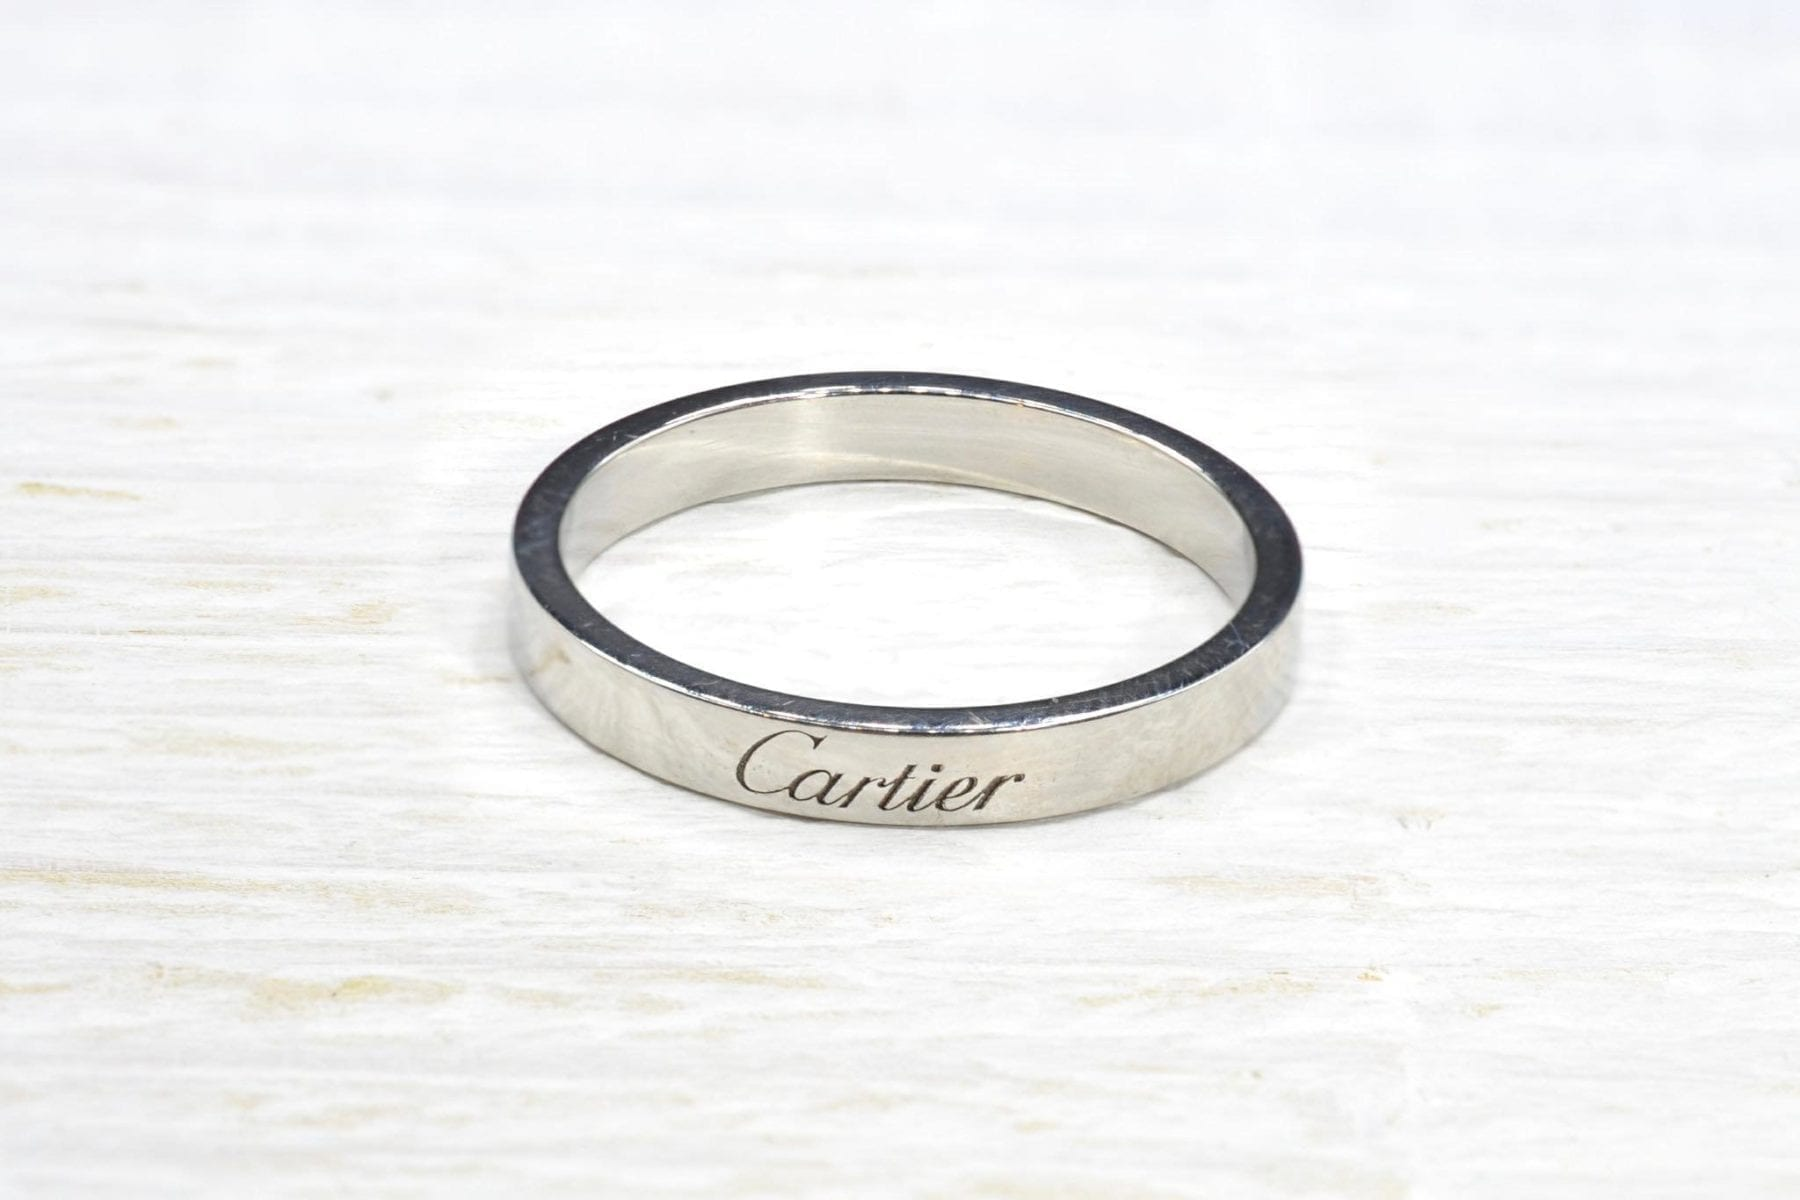 Cartier alliance